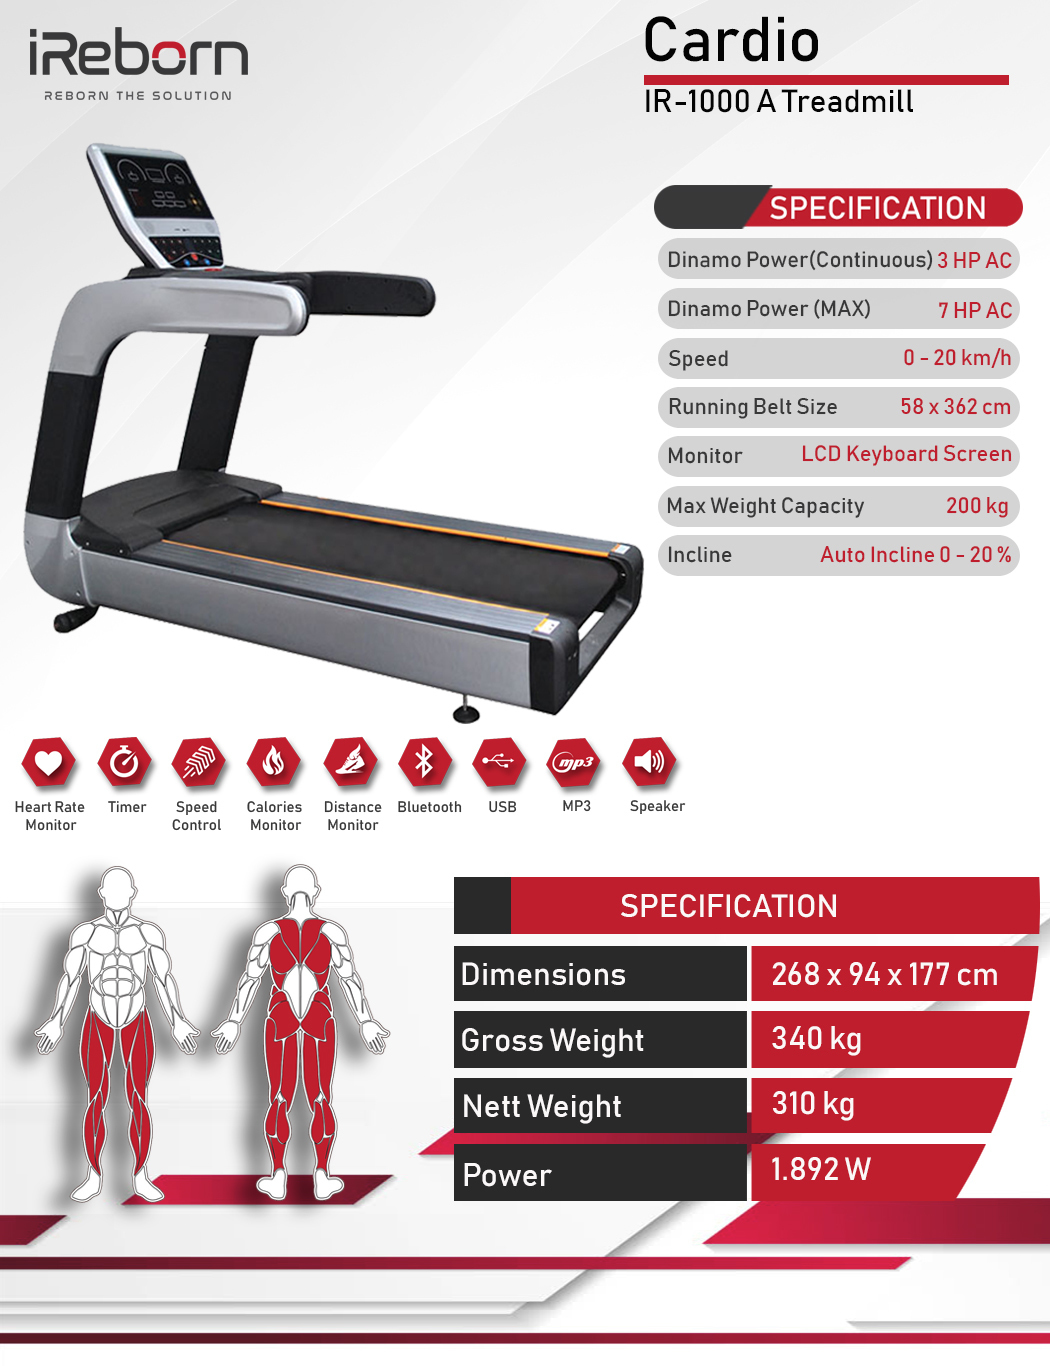 IR-1000A Motorized Treadmill 10